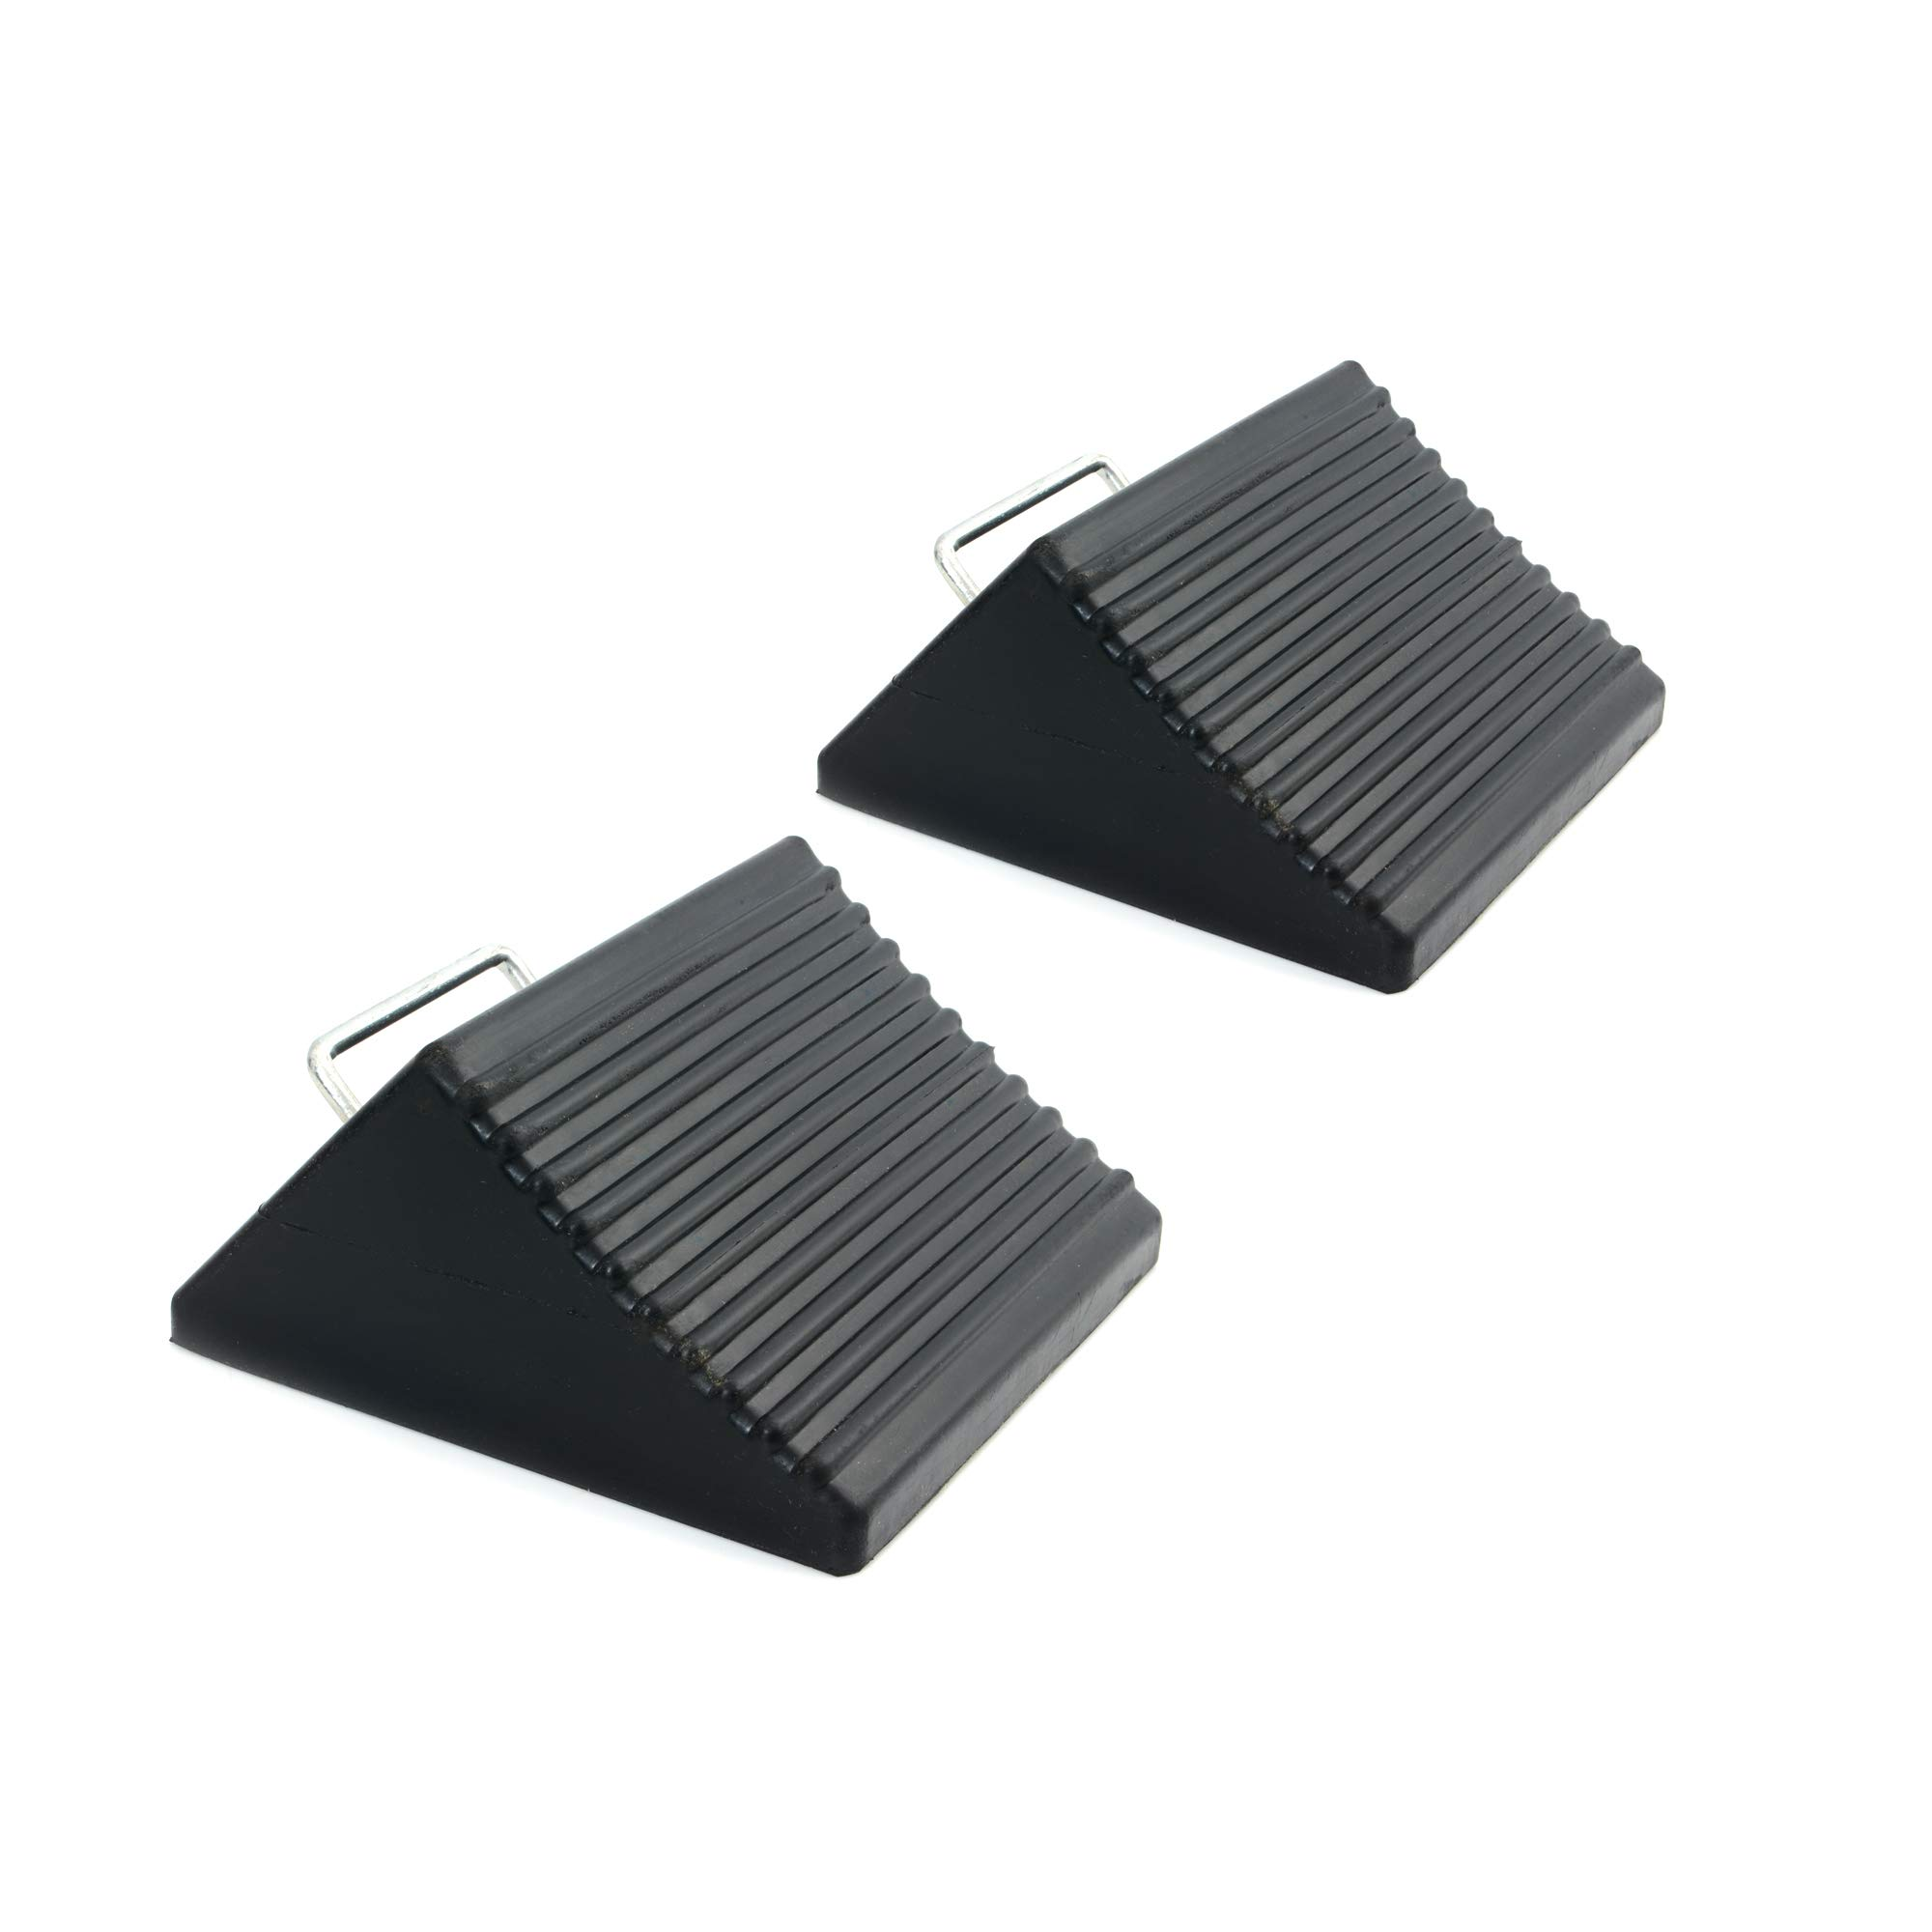 AFA Tooling Heavy Duty Rubber Set of 2 Wheel Chocks with Handle - Best Tire Block for Camper, Trailer, RV, Truck, Car and ATV